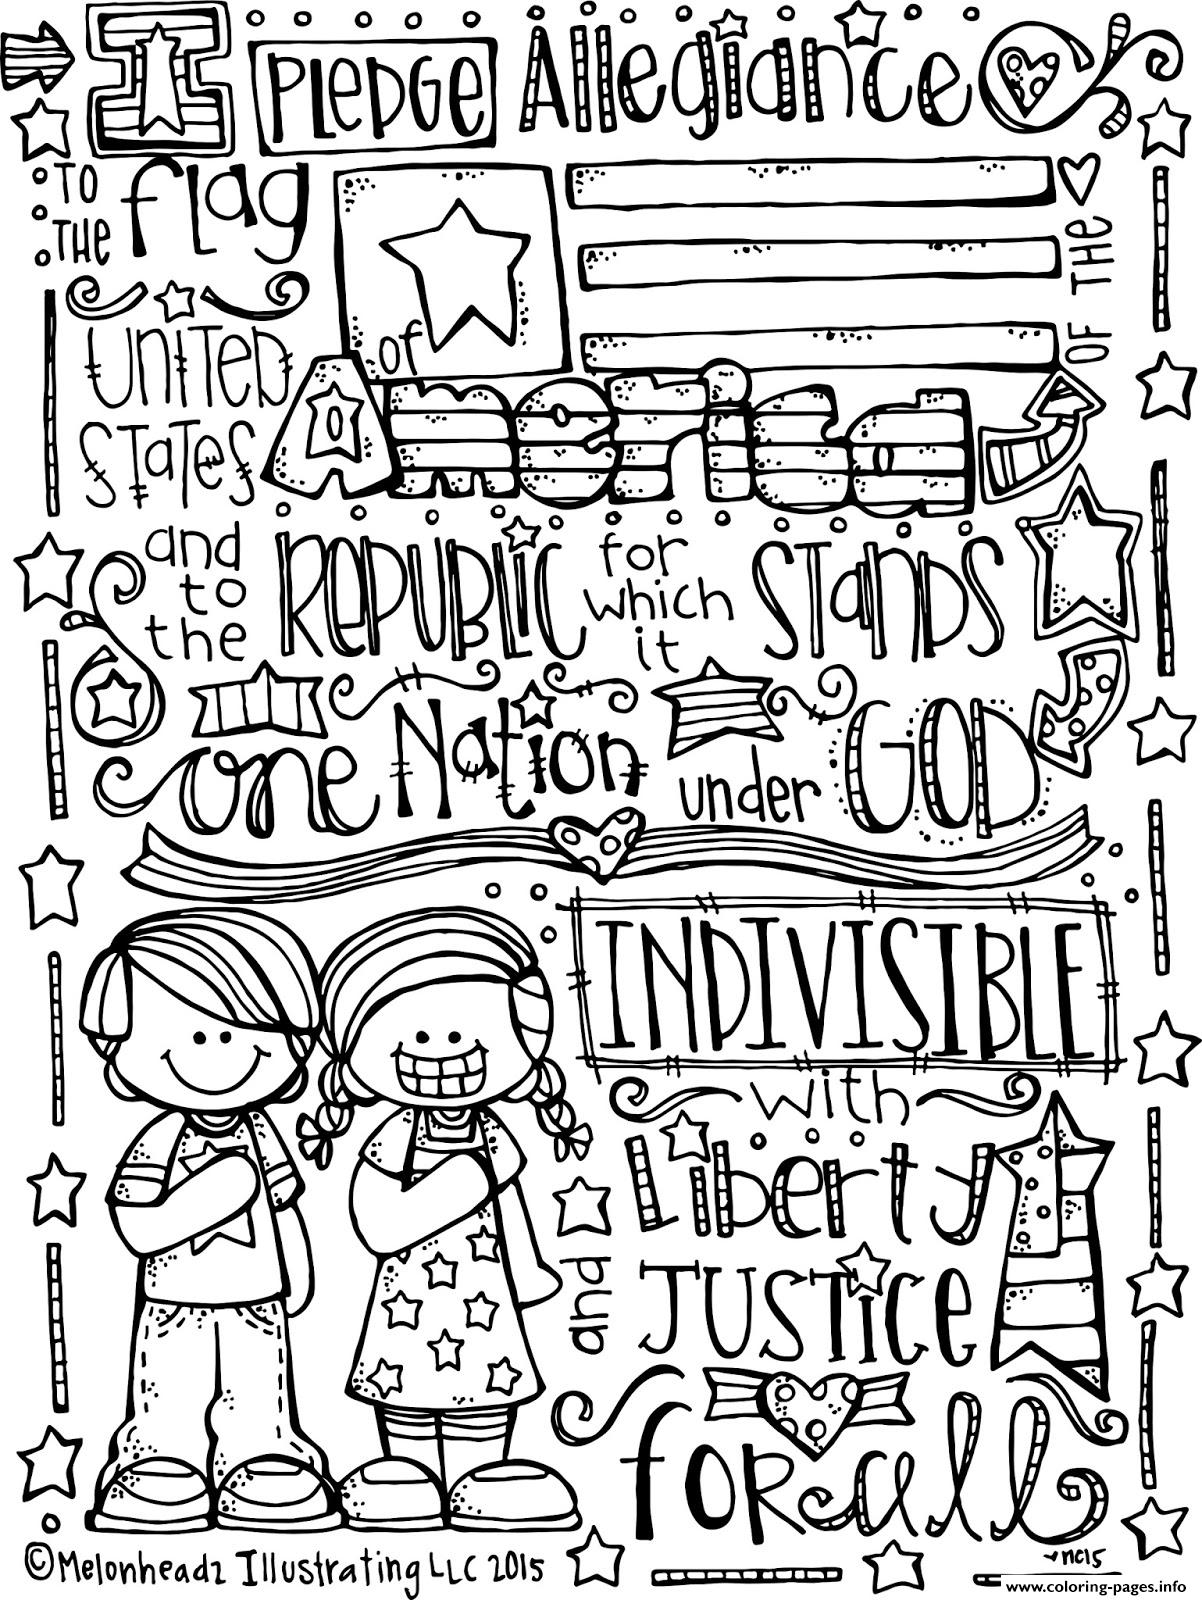 Coloring pages 2015 - Pledge Of Allegiance Melonheadz Illustrating Llc 2015 Bw Coloring Pages Printable